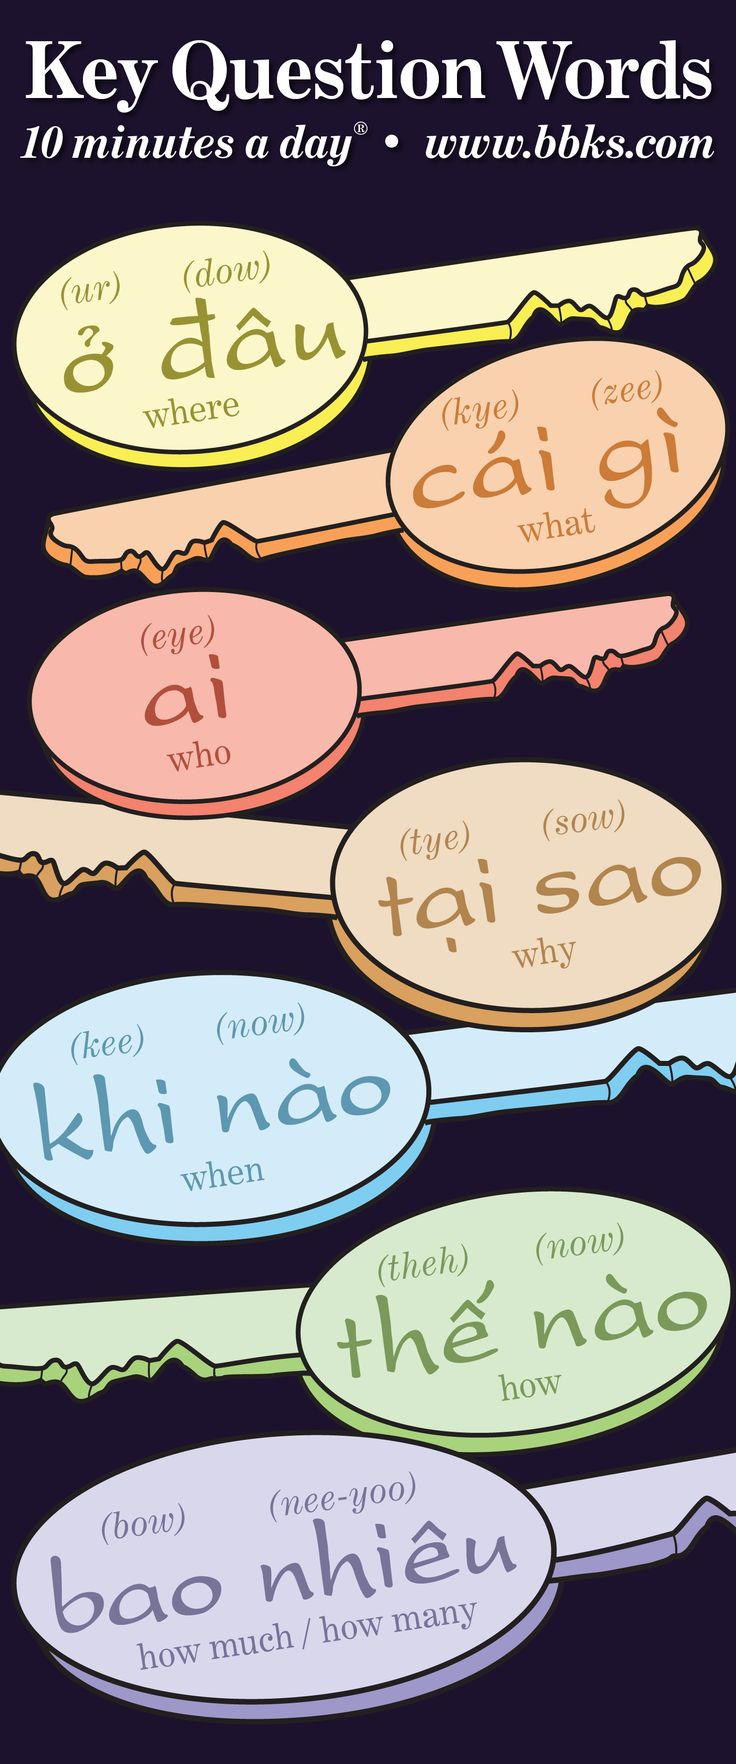 Learn Key Question Words in Vietnamese!